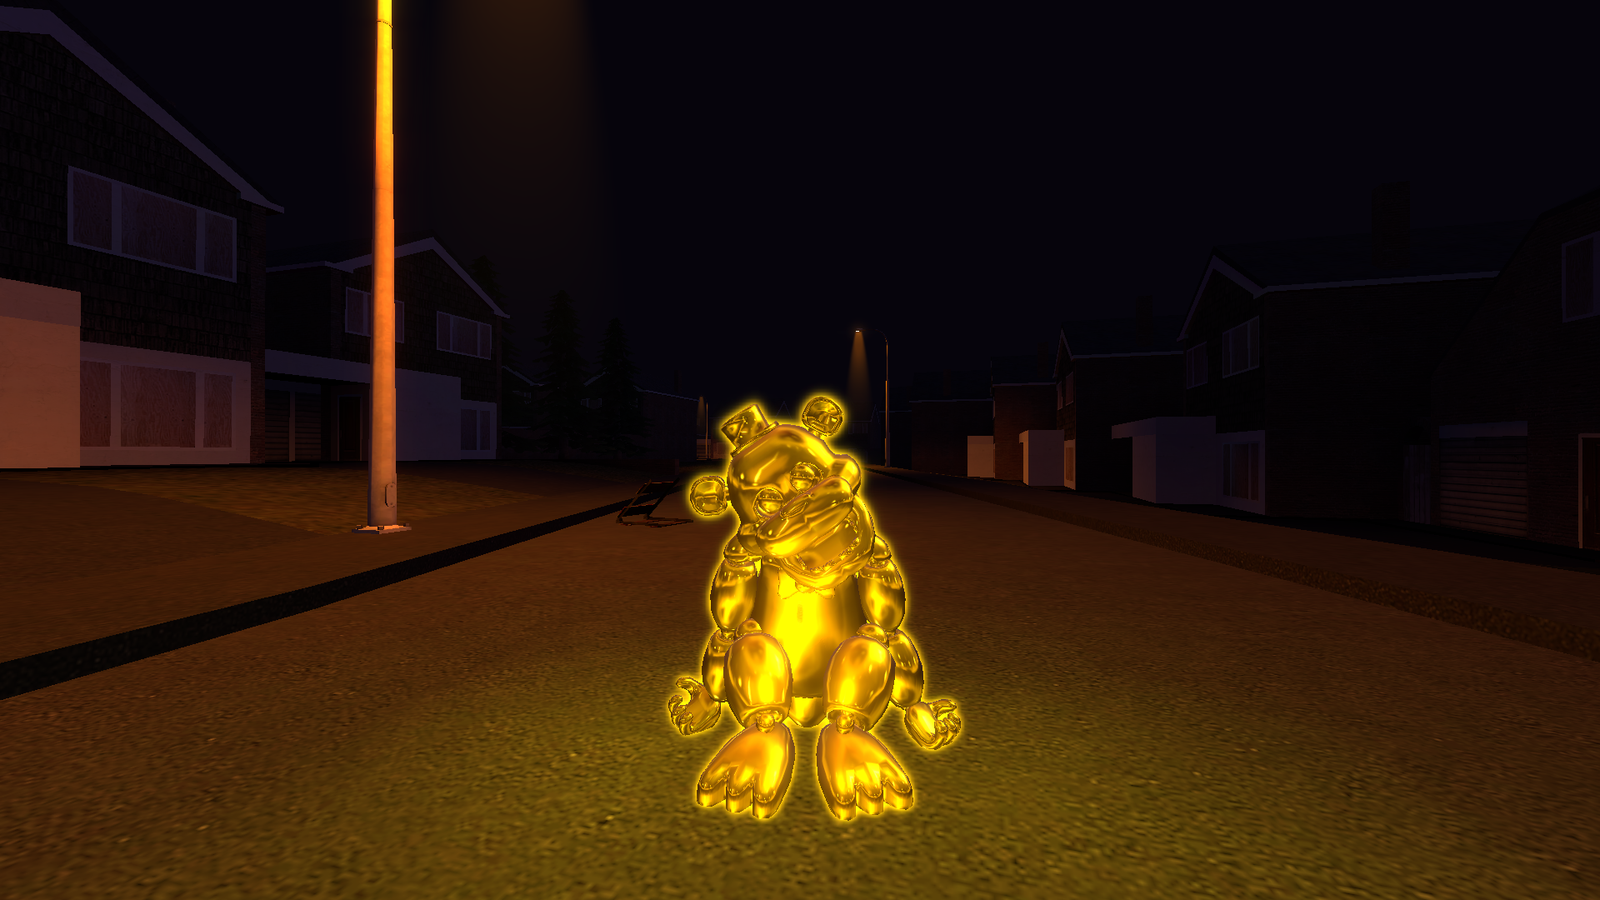 REAL Golden Freddy by Harejules 1600x900